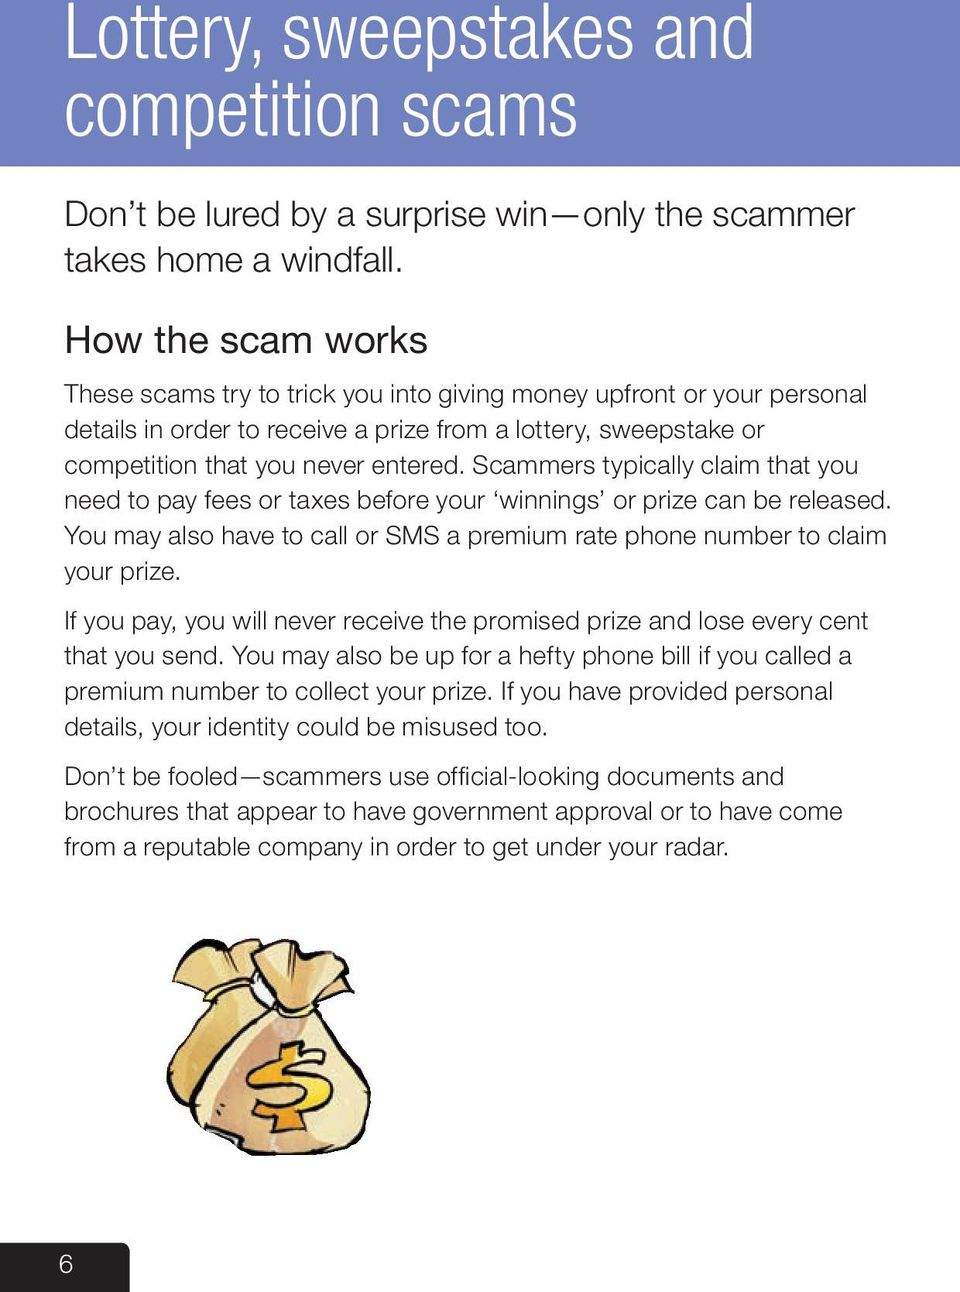 Scammers typically claim that you need to pay fees or taxes before your winnings or prize can be released. You may also have to call or SMS a premium rate phone number to claim your prize.